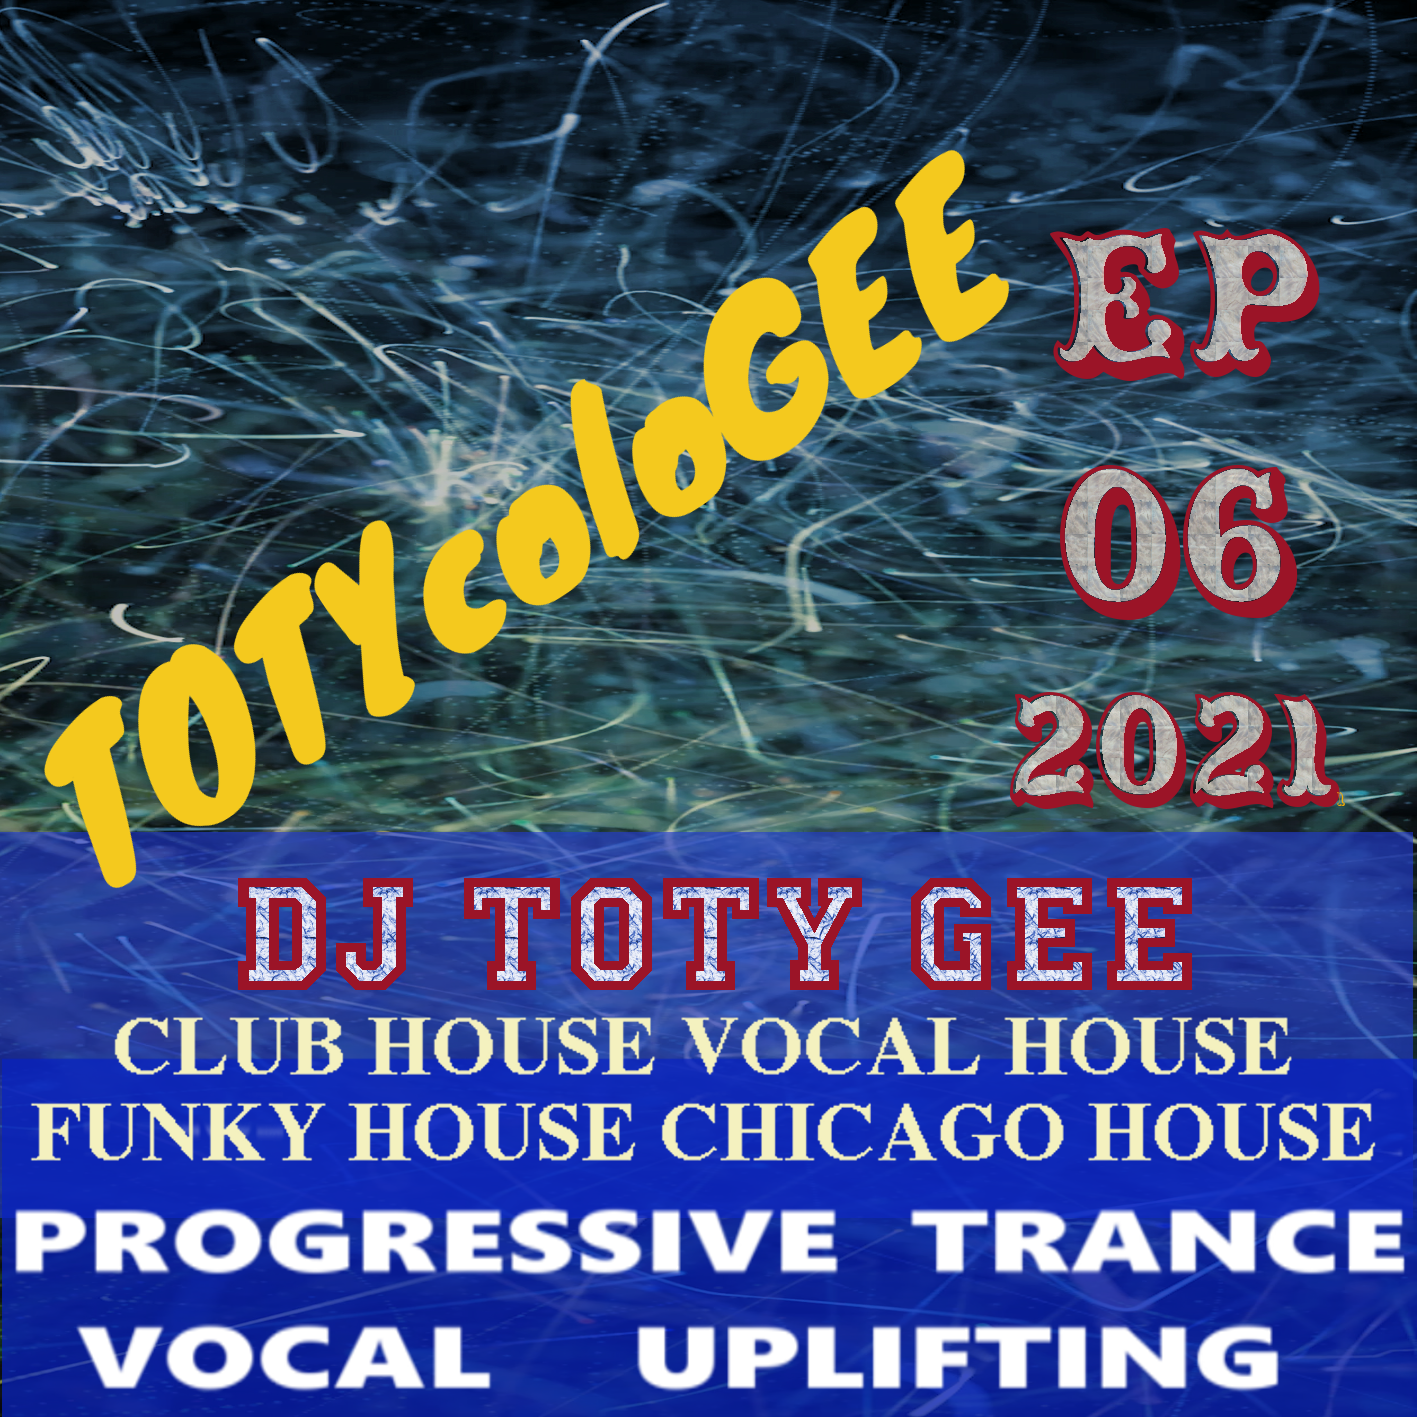 TOTYcoloGEE 2021 – 06 – DJ TOTY GEE Live